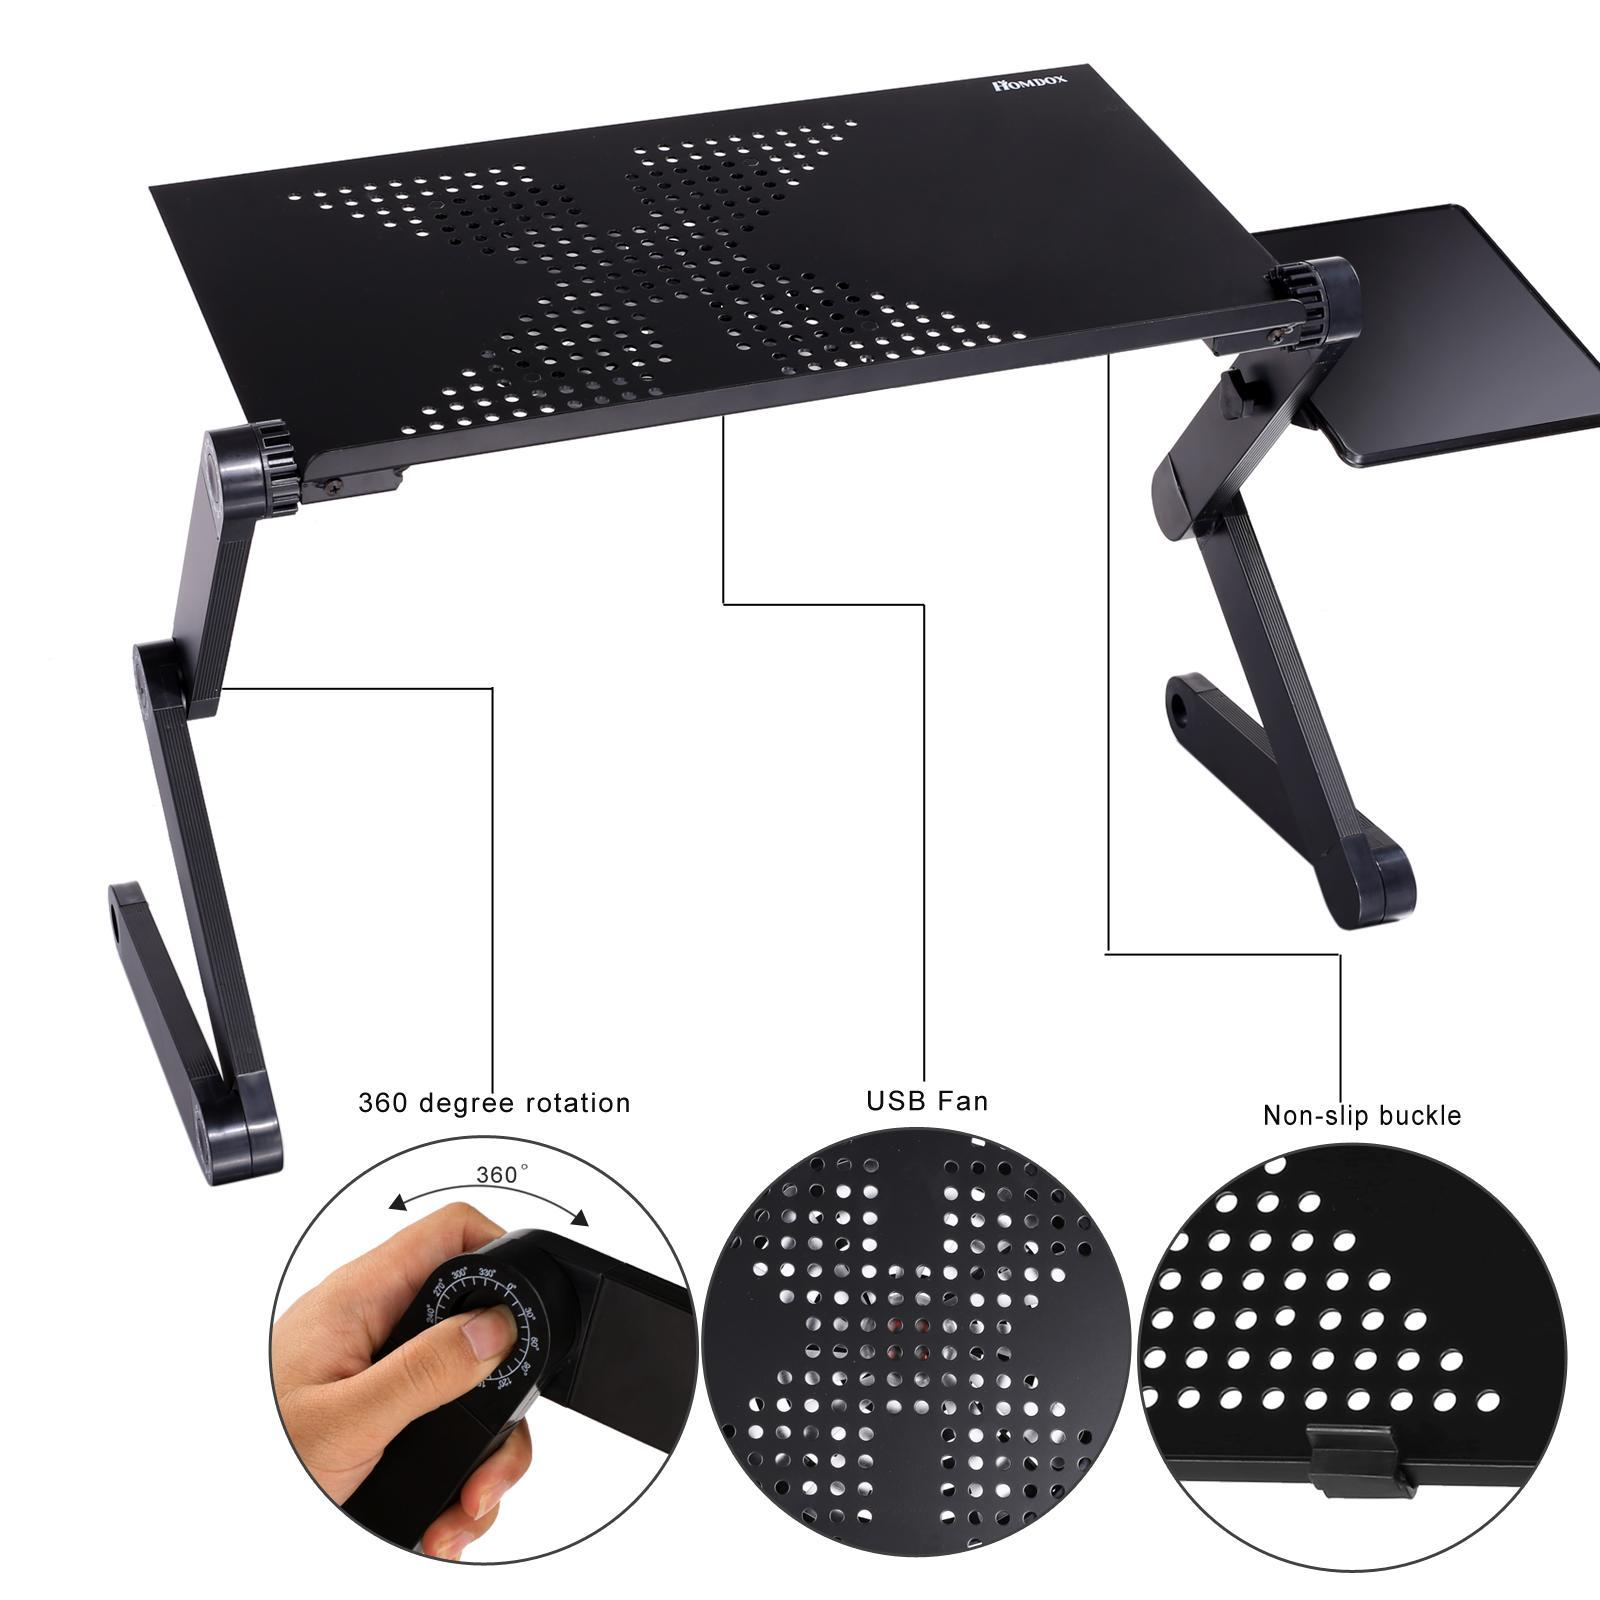 360 Degree Adjustable Foldable Laptop Table 4